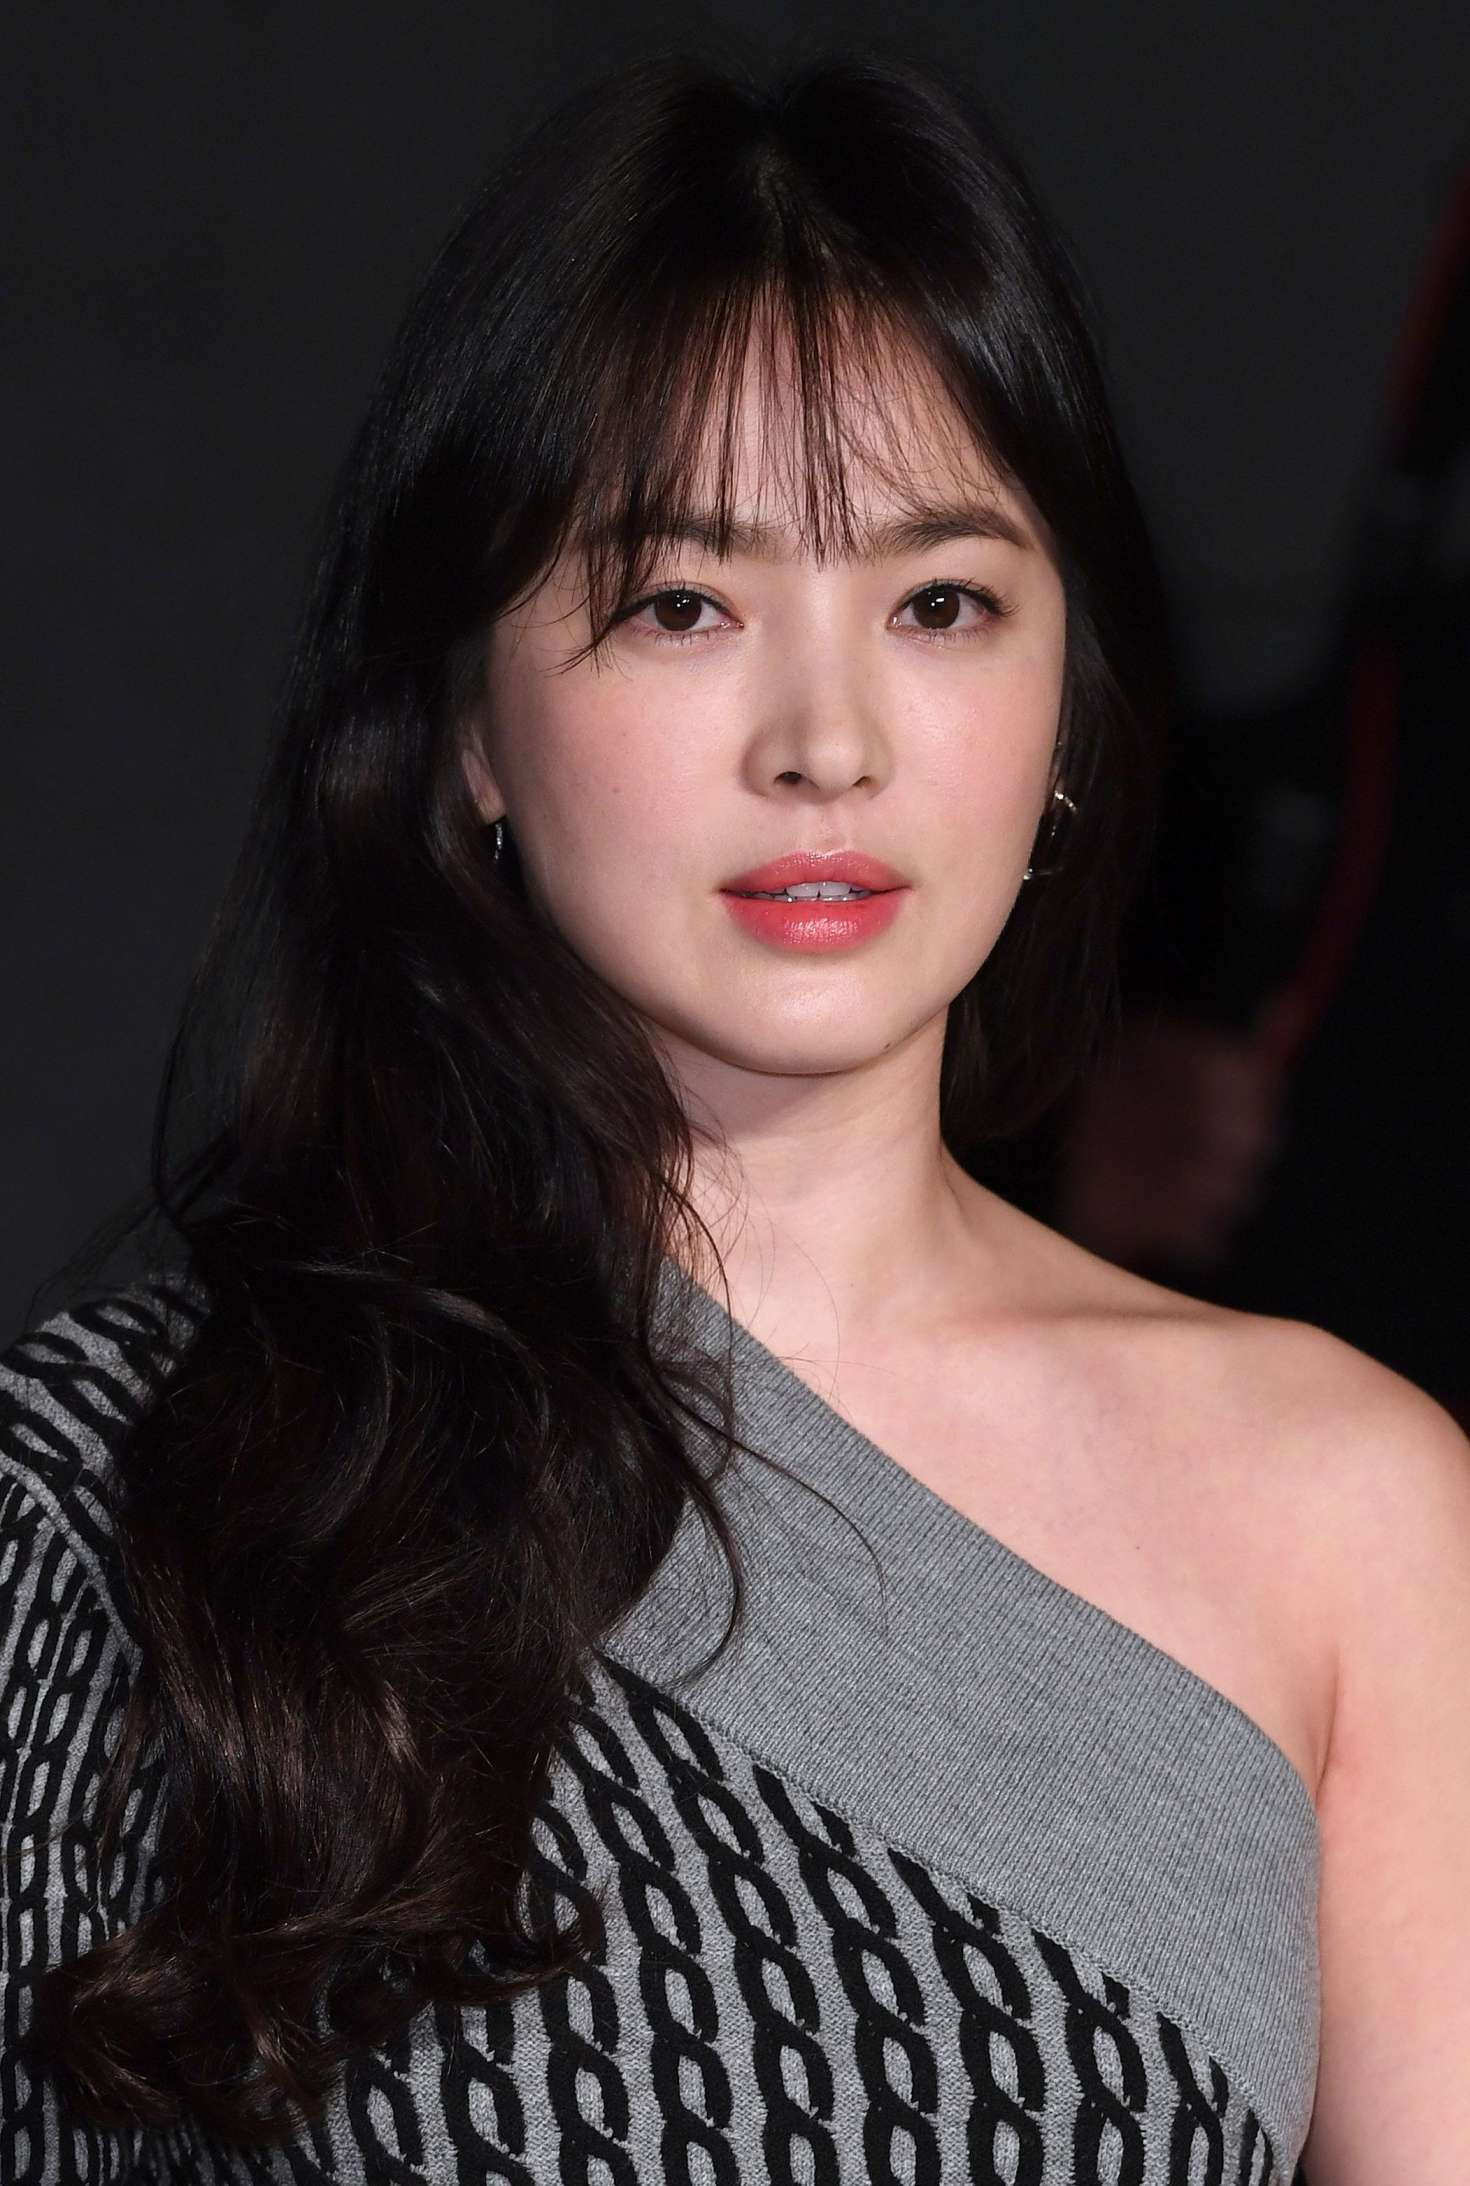 Song Hye Kyo: Burberry Show at 2017 LFW -11 – GotCeleb